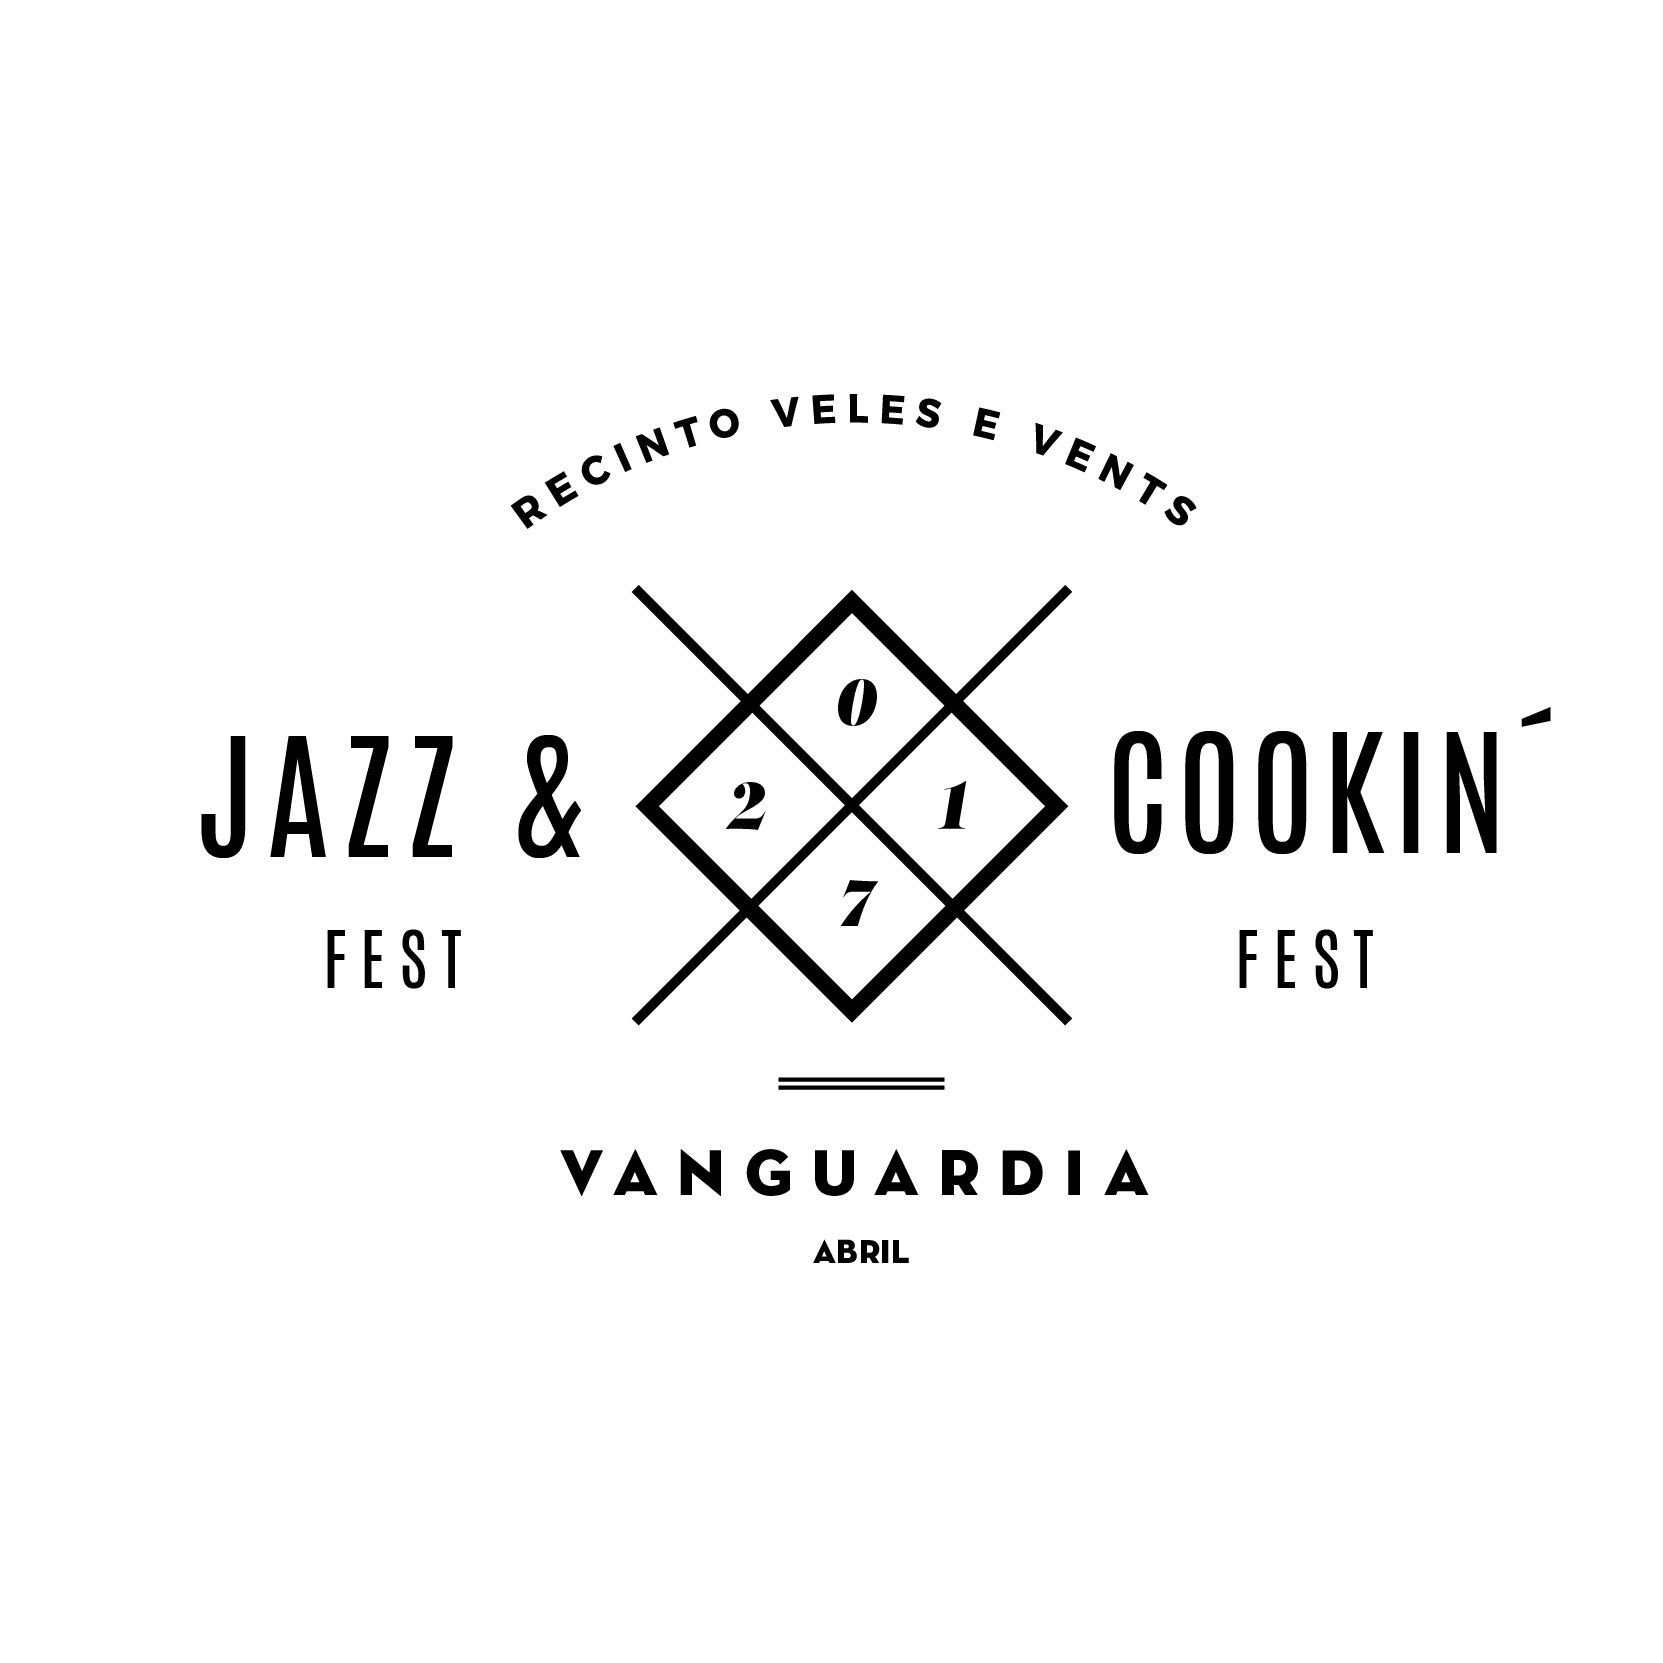 Jazz & Cookin´